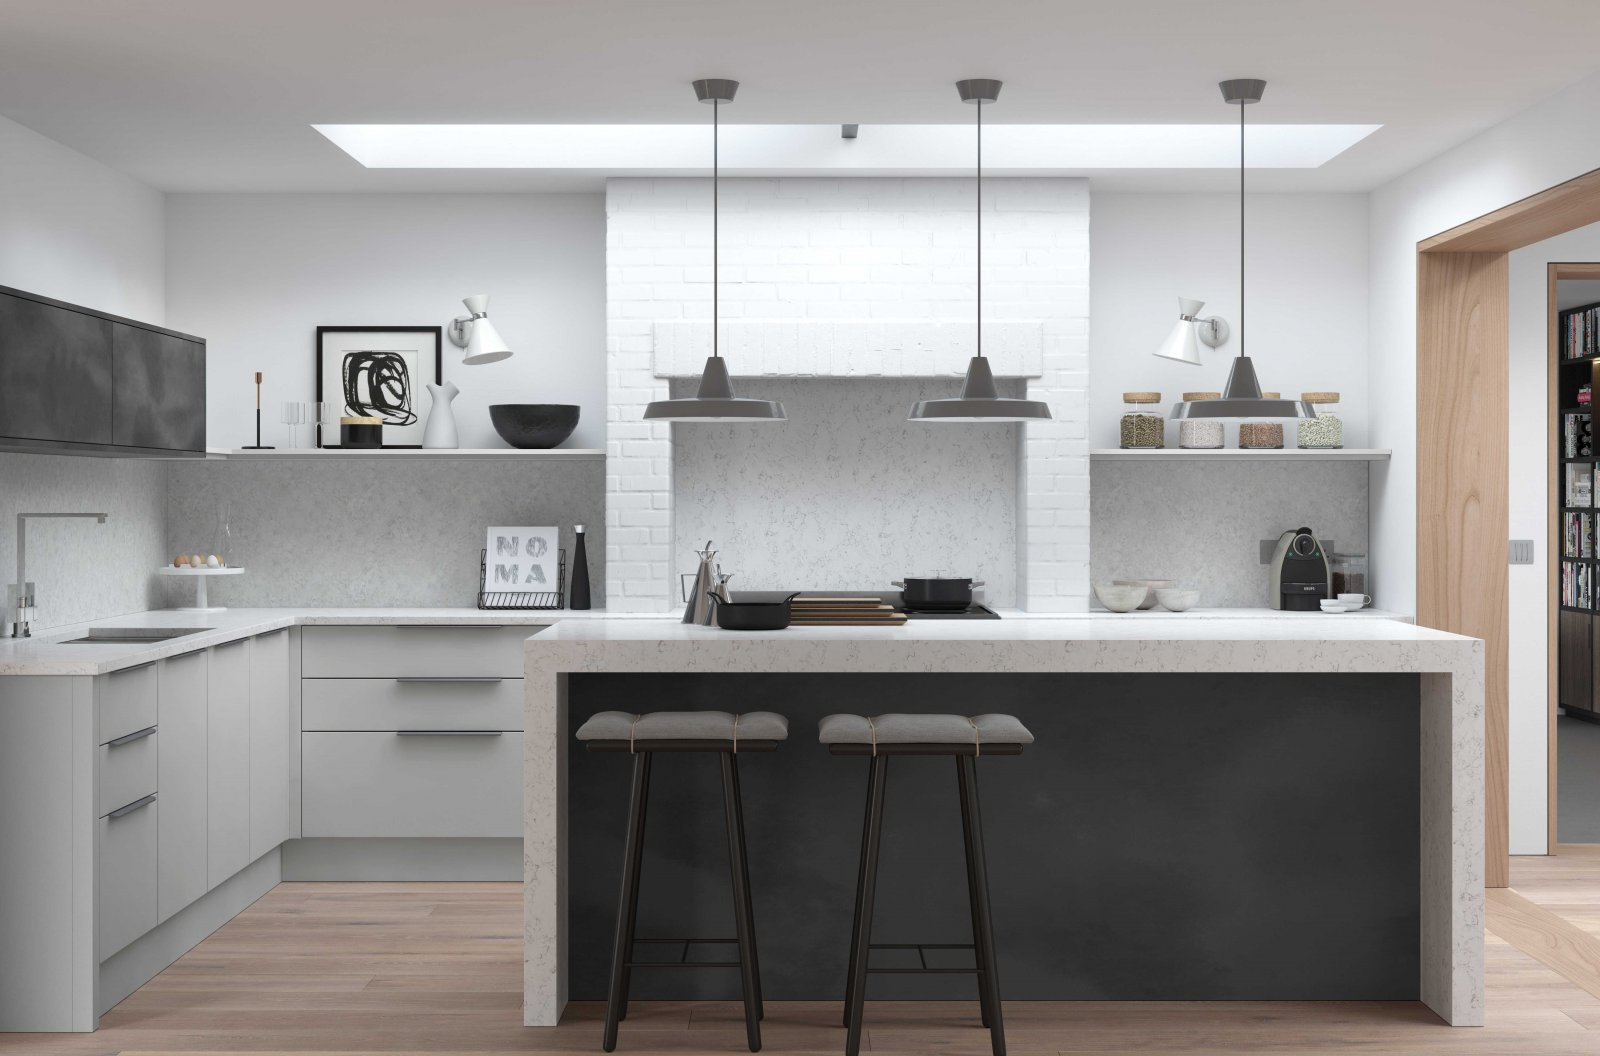 Matt light grey modern style kitchen with black steel look kitchen island